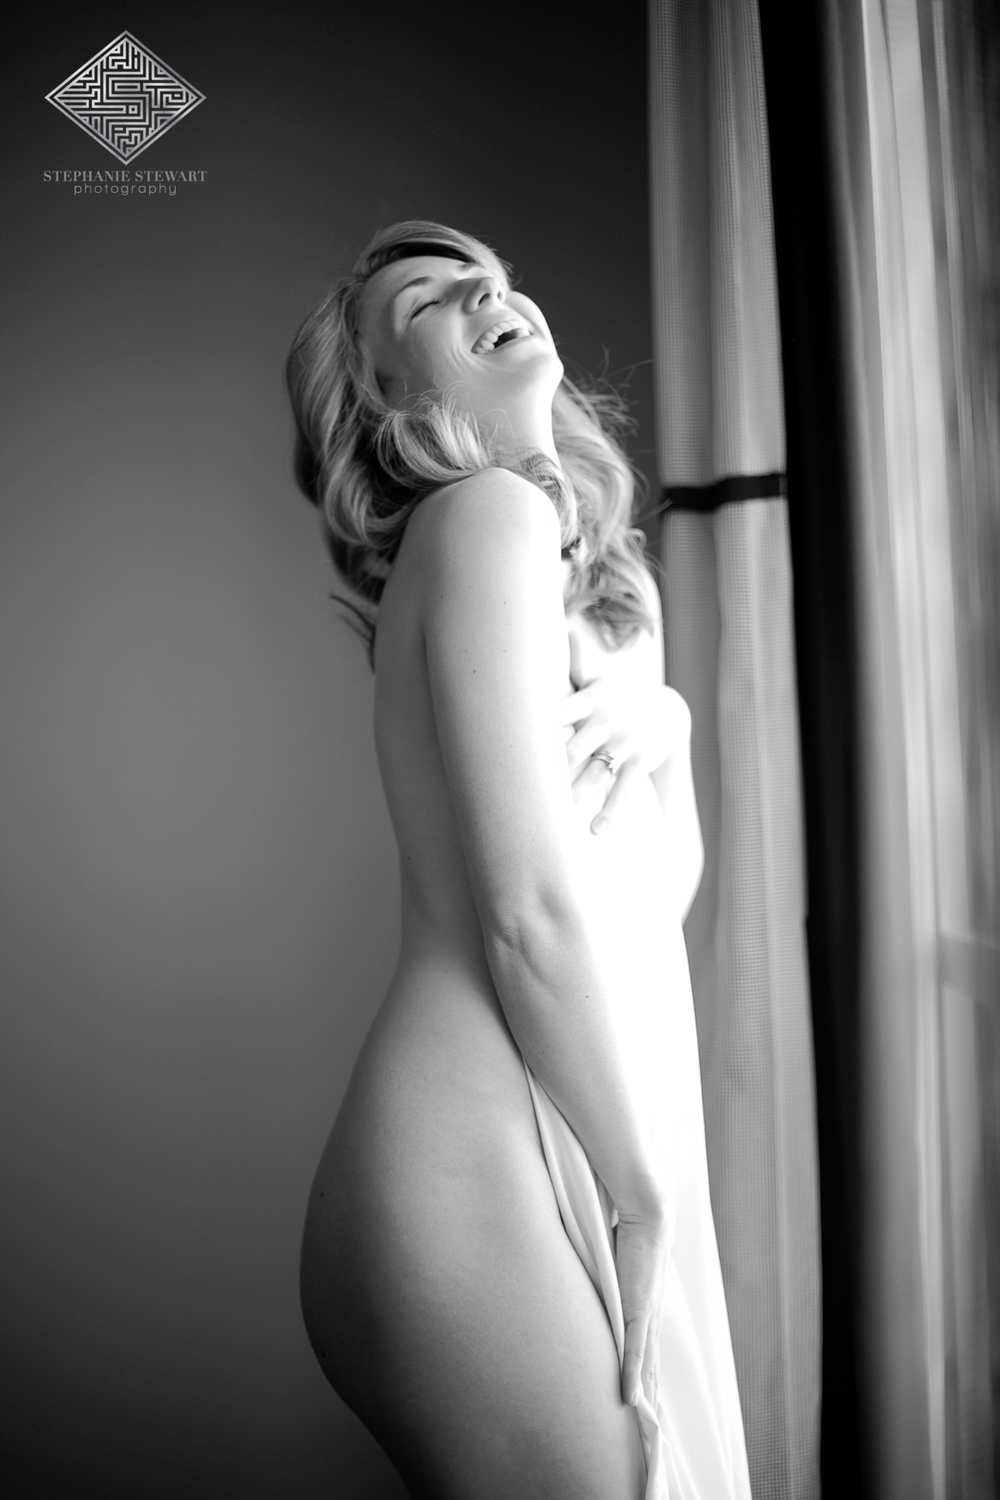 Real-Women-Nude-Sheets-Black-and-White-Boudoir-Laughing-Stephanie-Stewart-Photography